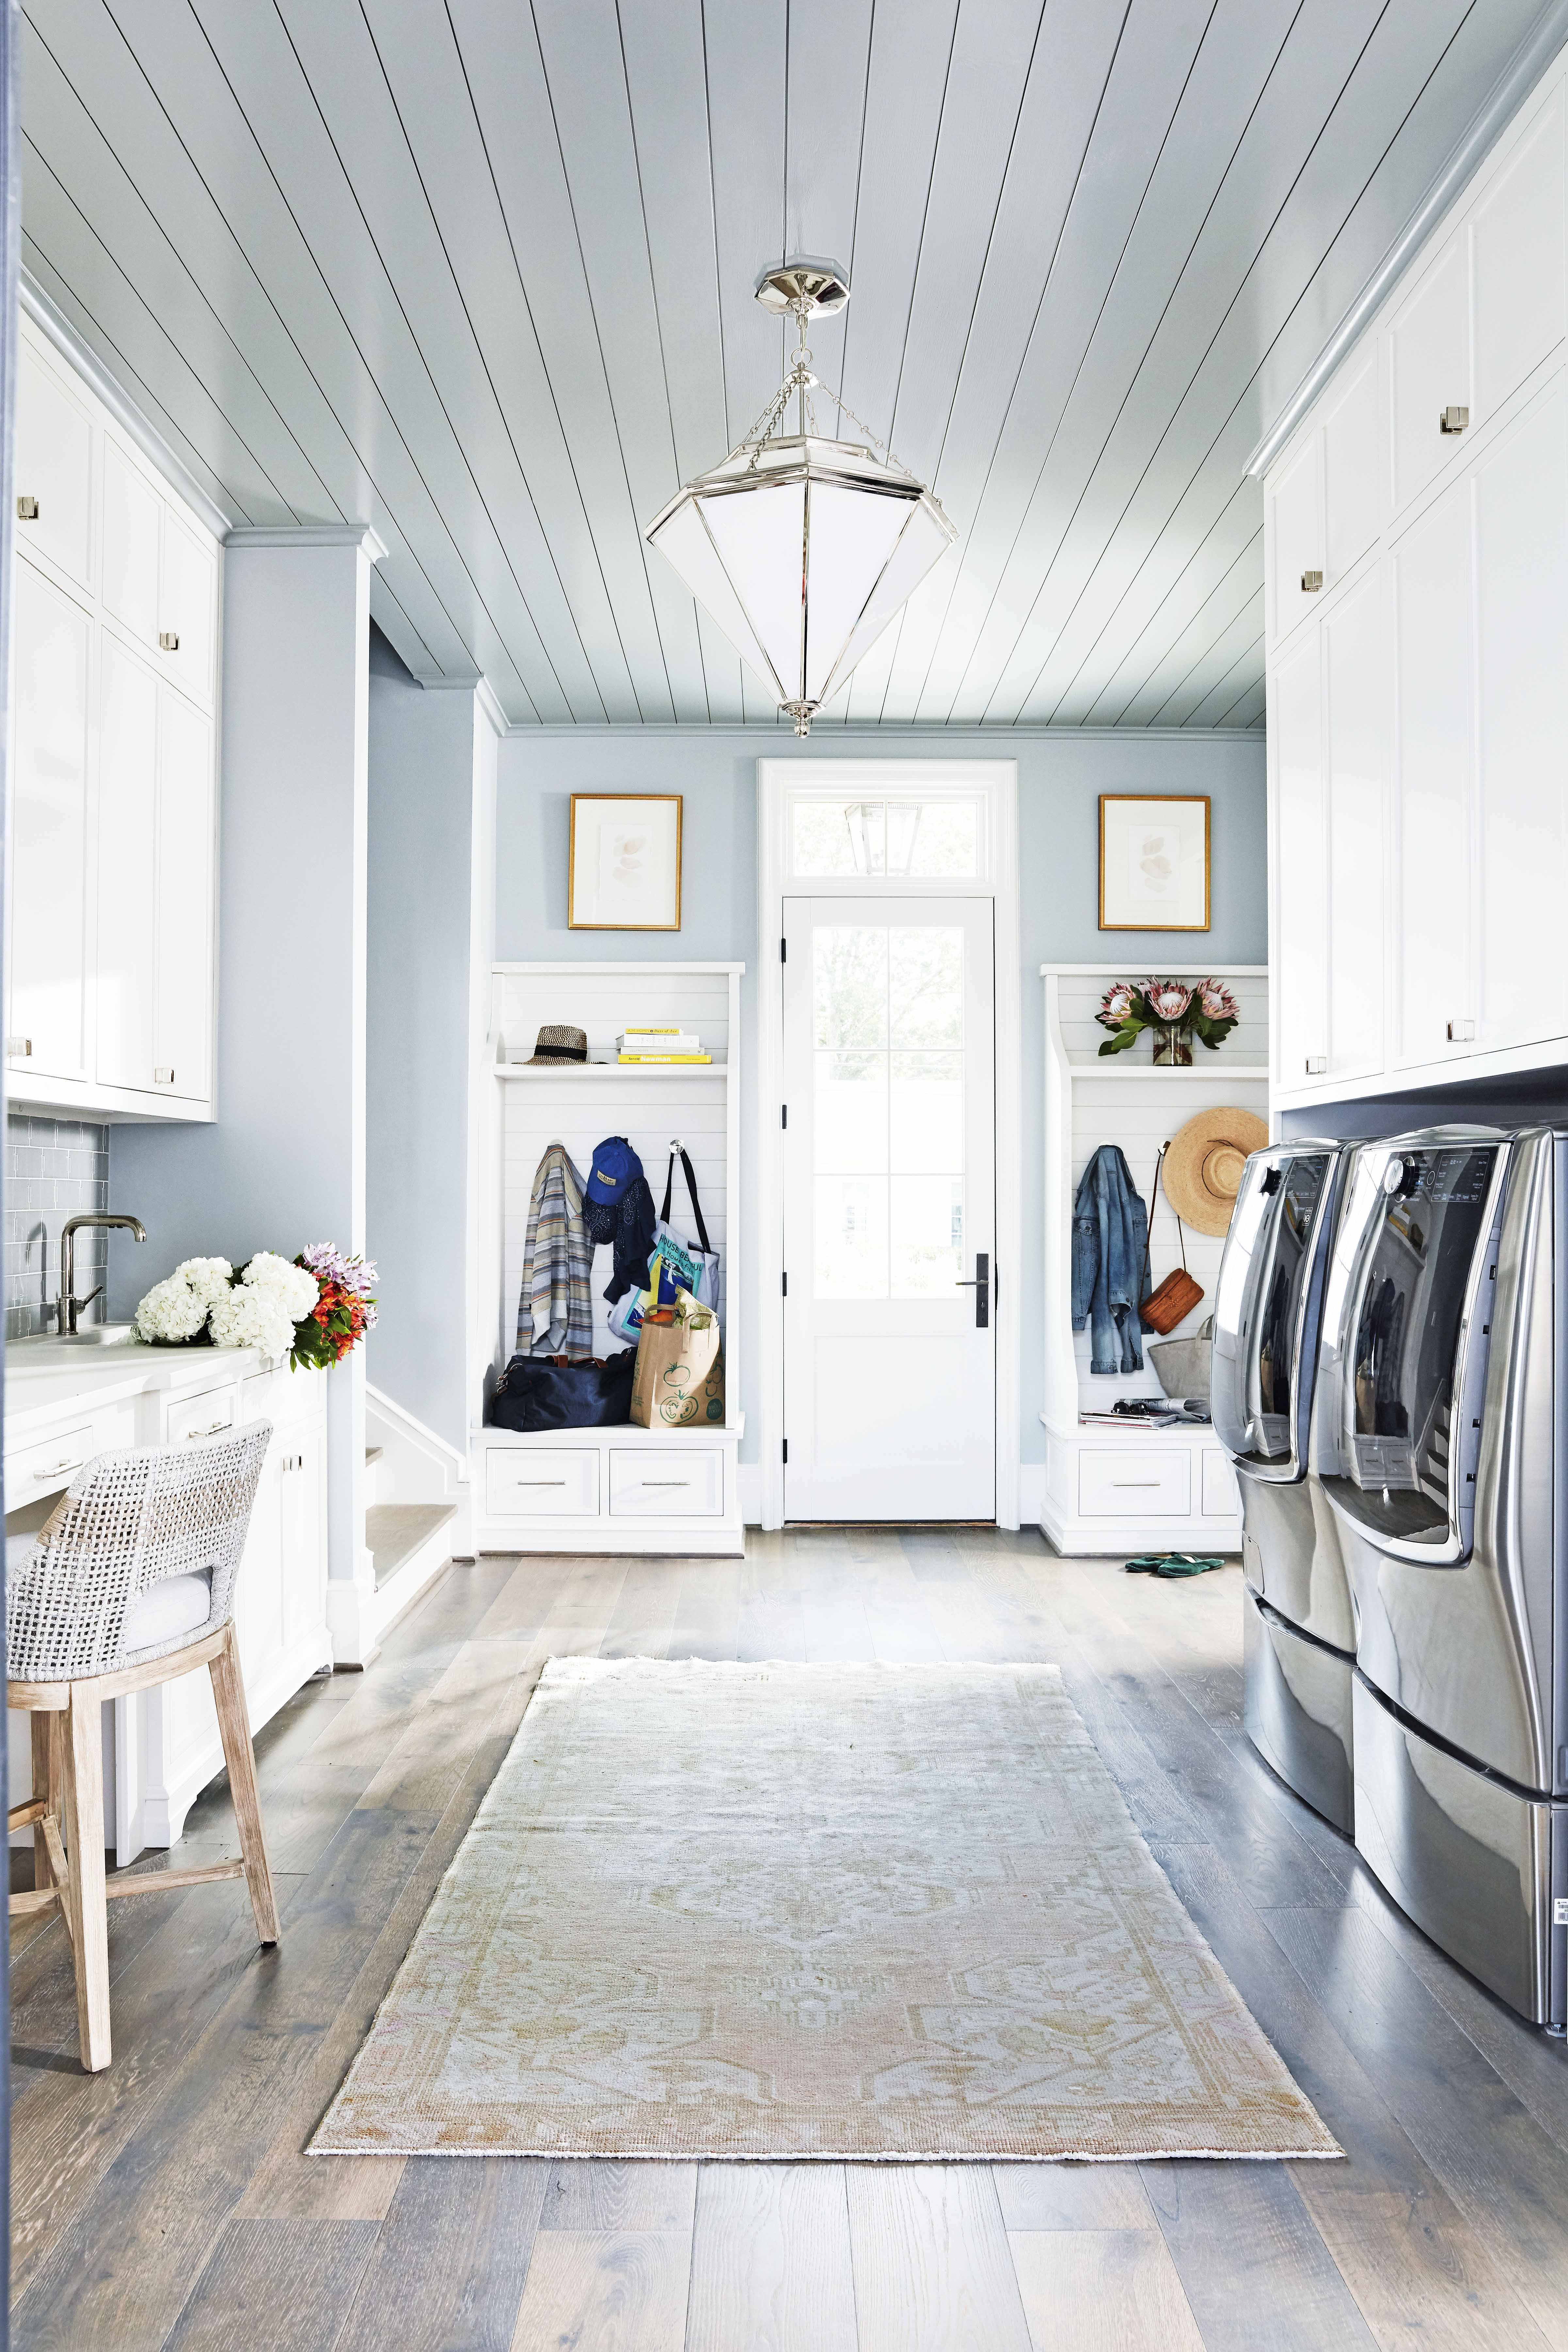 This Mudroom Is Ingeniously Designed to Keep Clutter at Bay